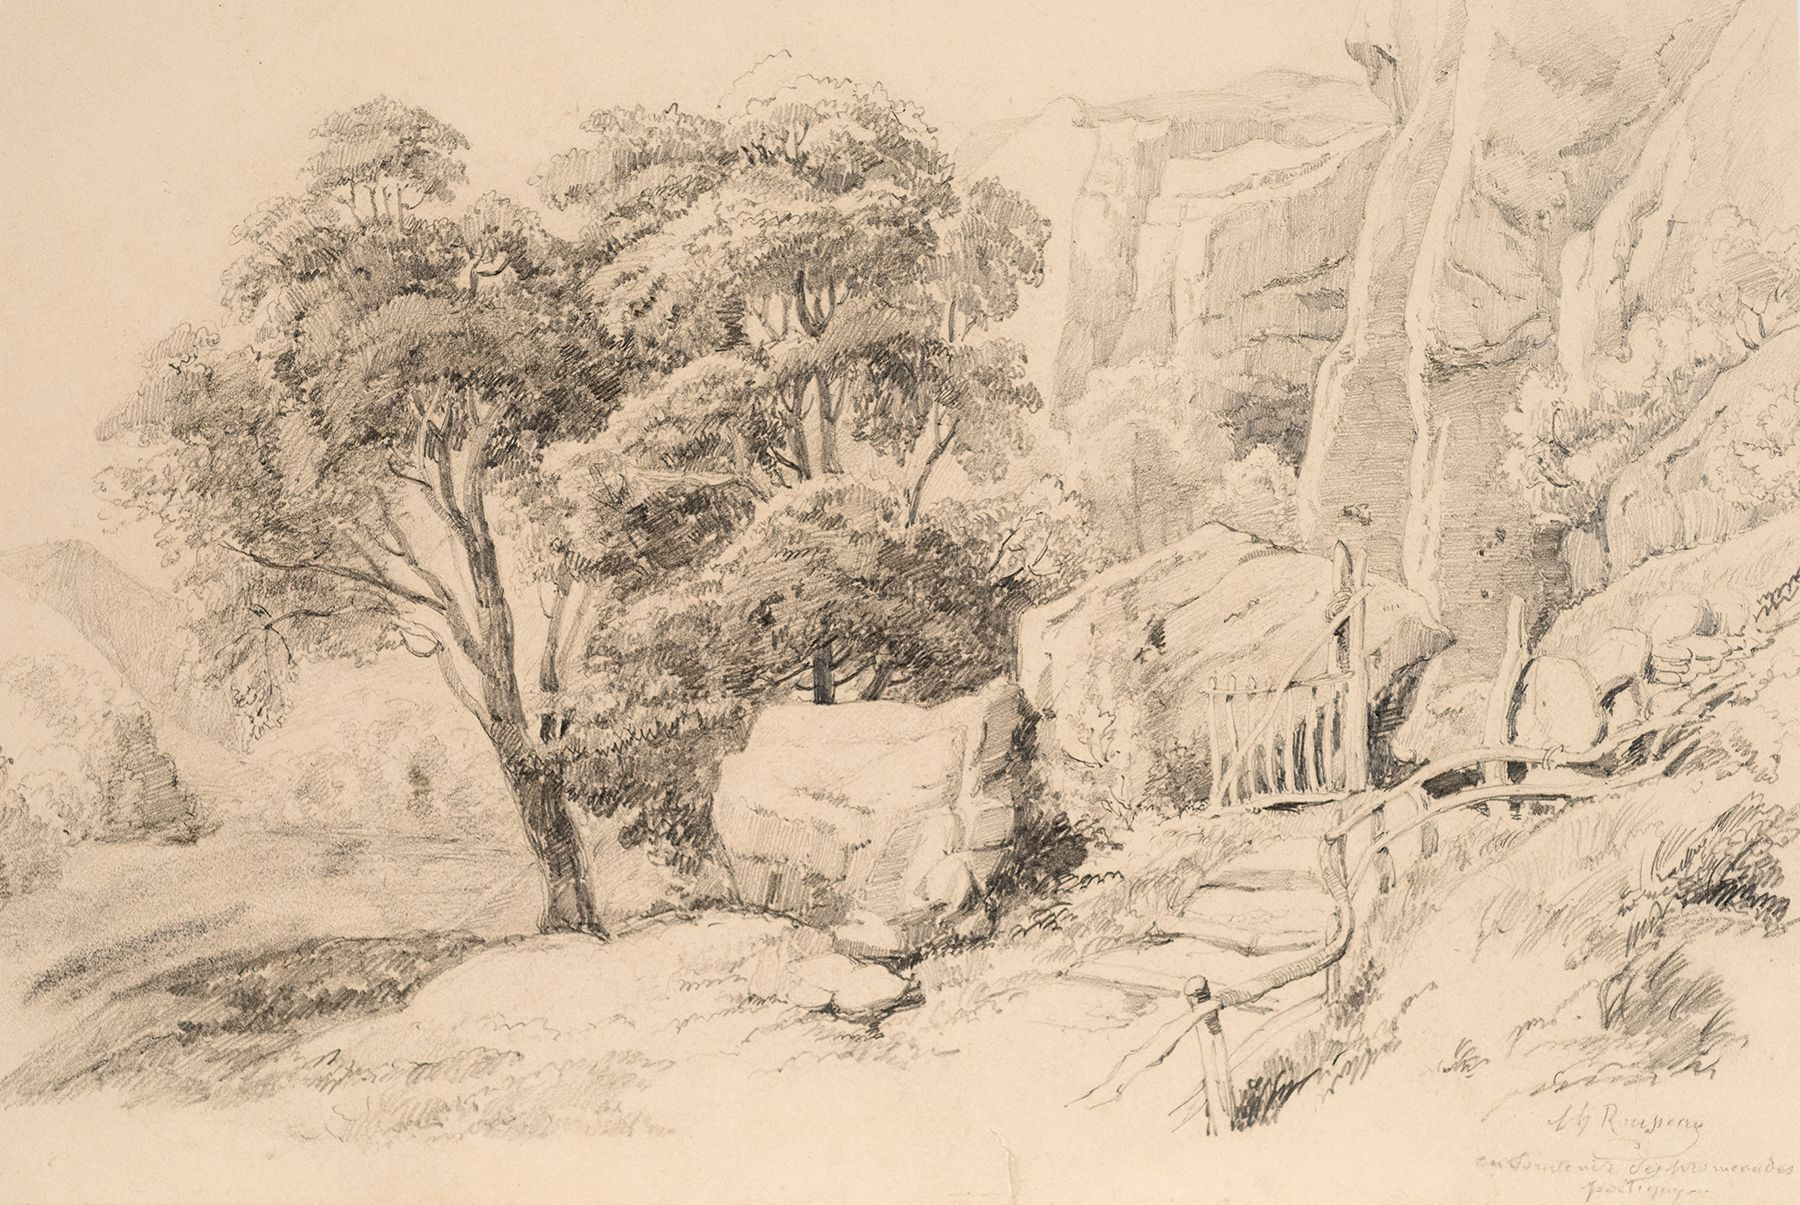 Theodore Rousseau, Rocky Landscape with Tree and Gate  Pencil on paper 9 x 13 1/8 in.